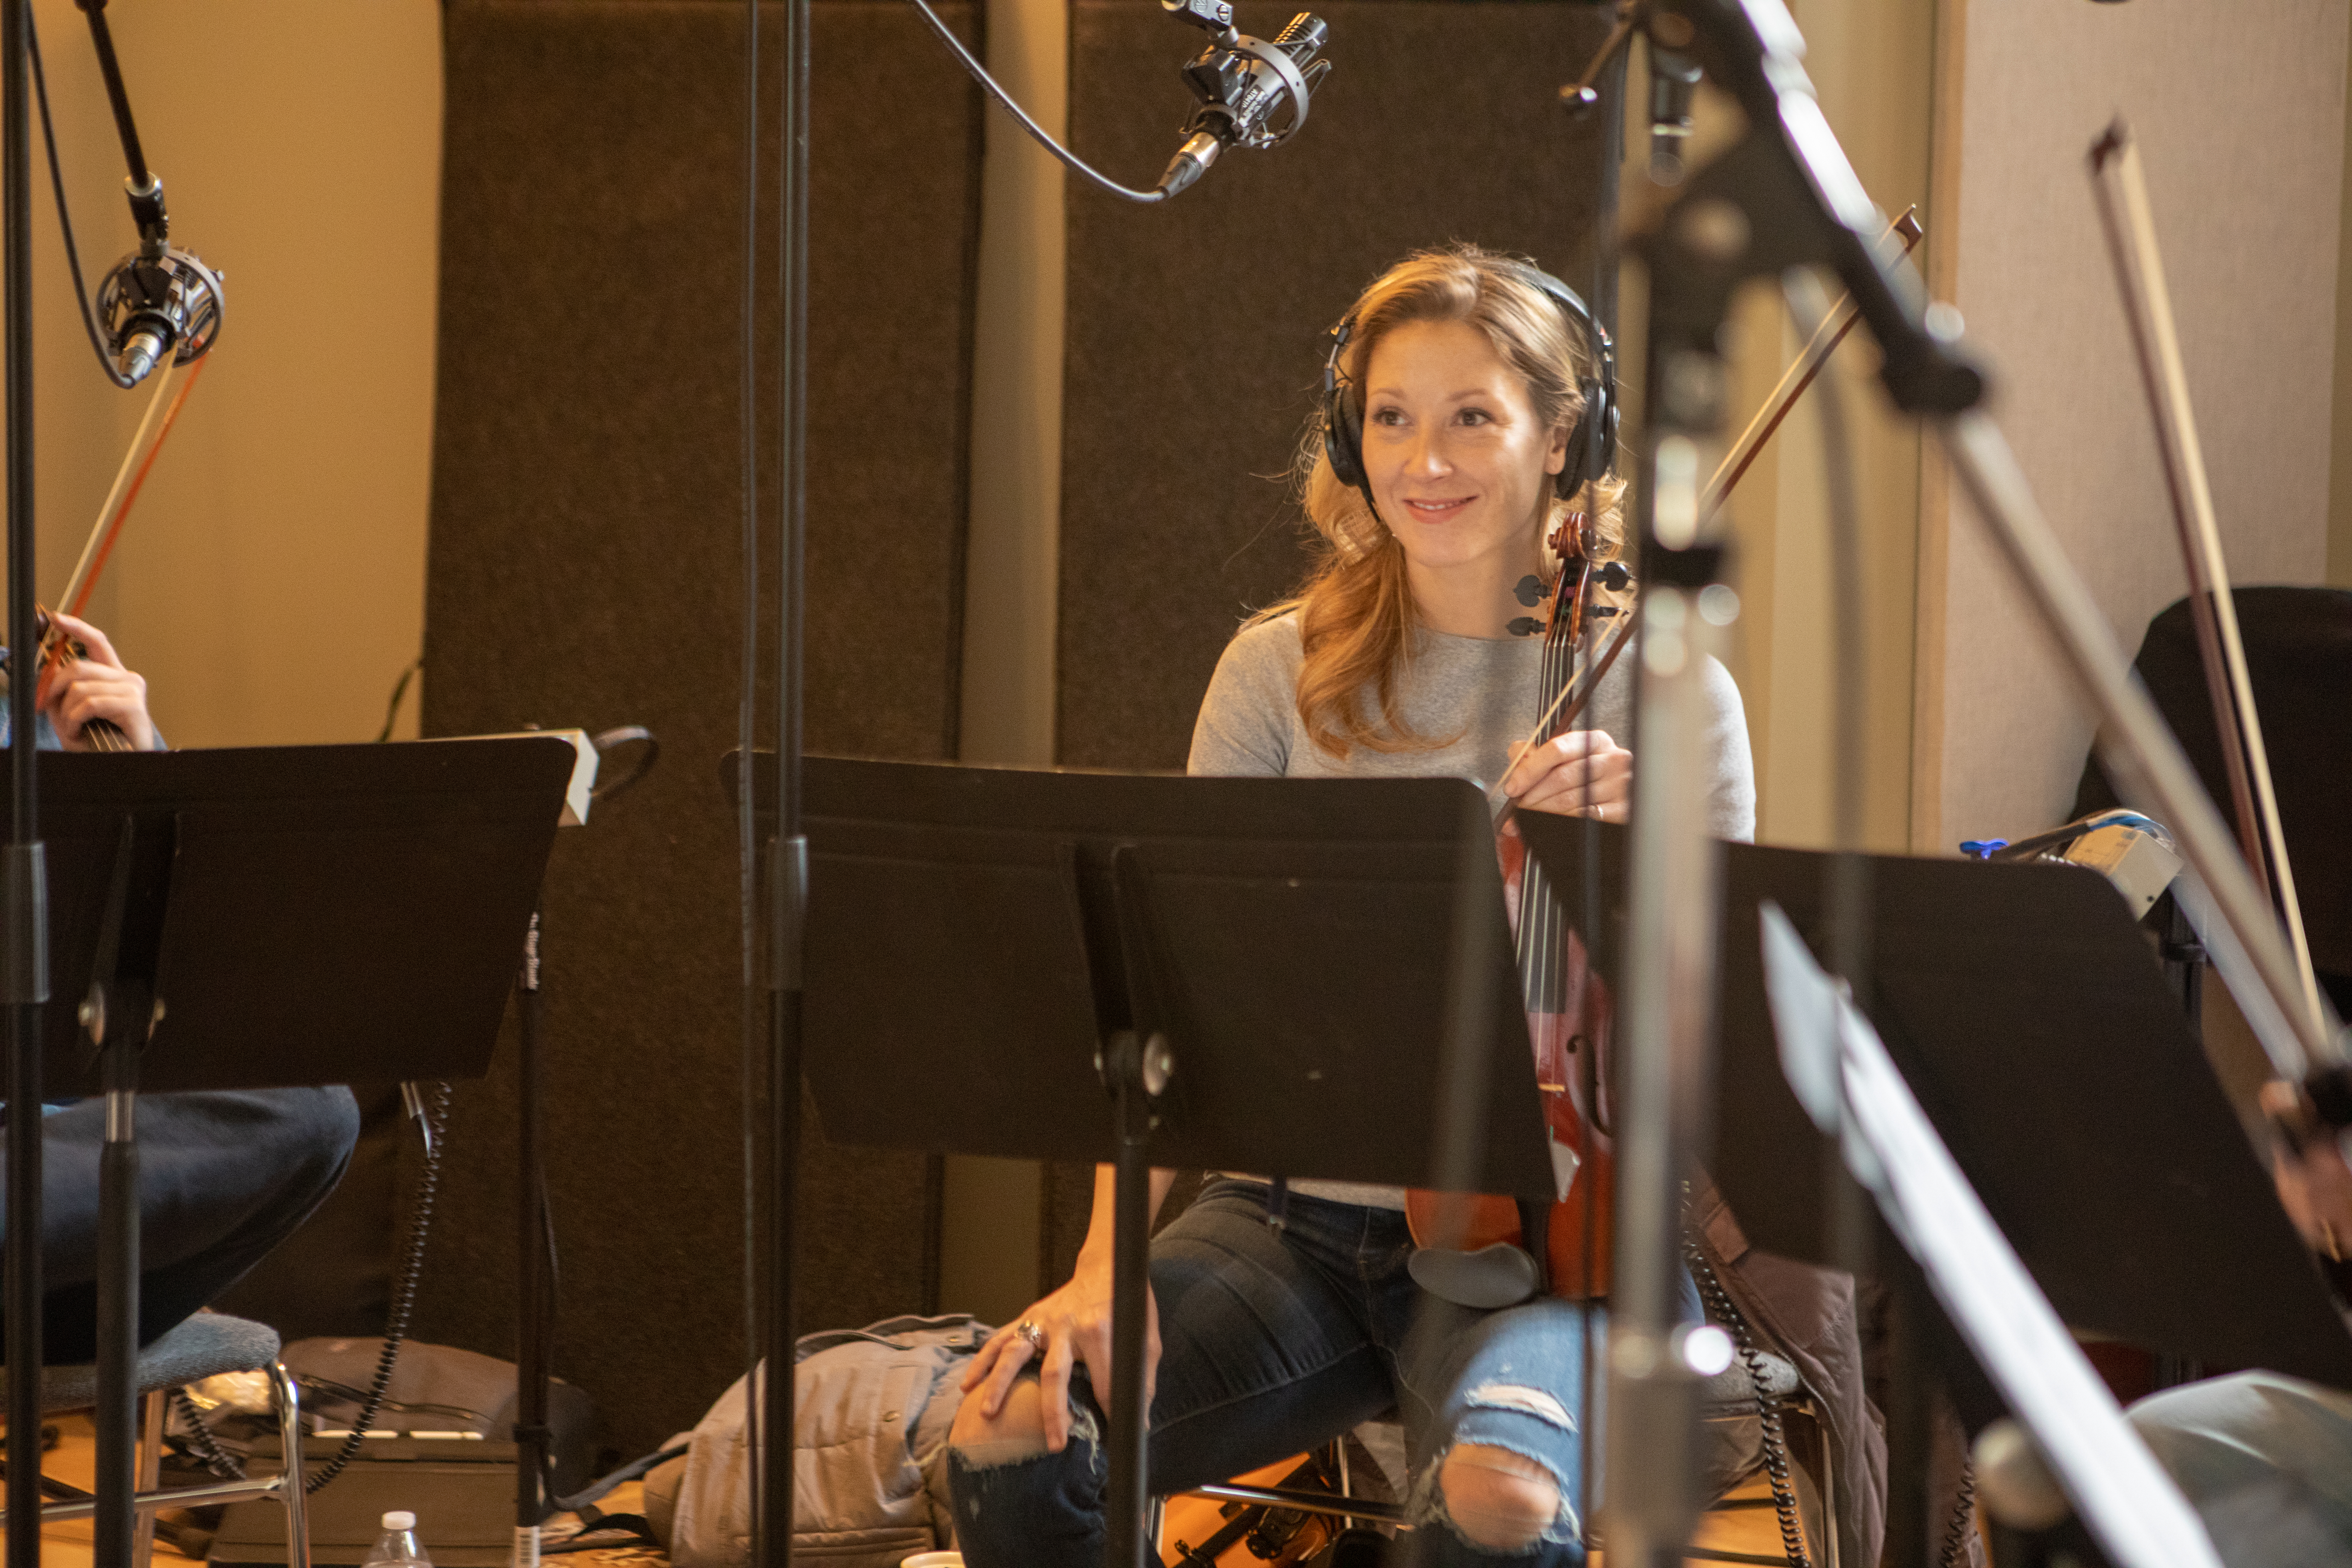 Strings Day for The Love Bugs score, Renée Patten, violinist